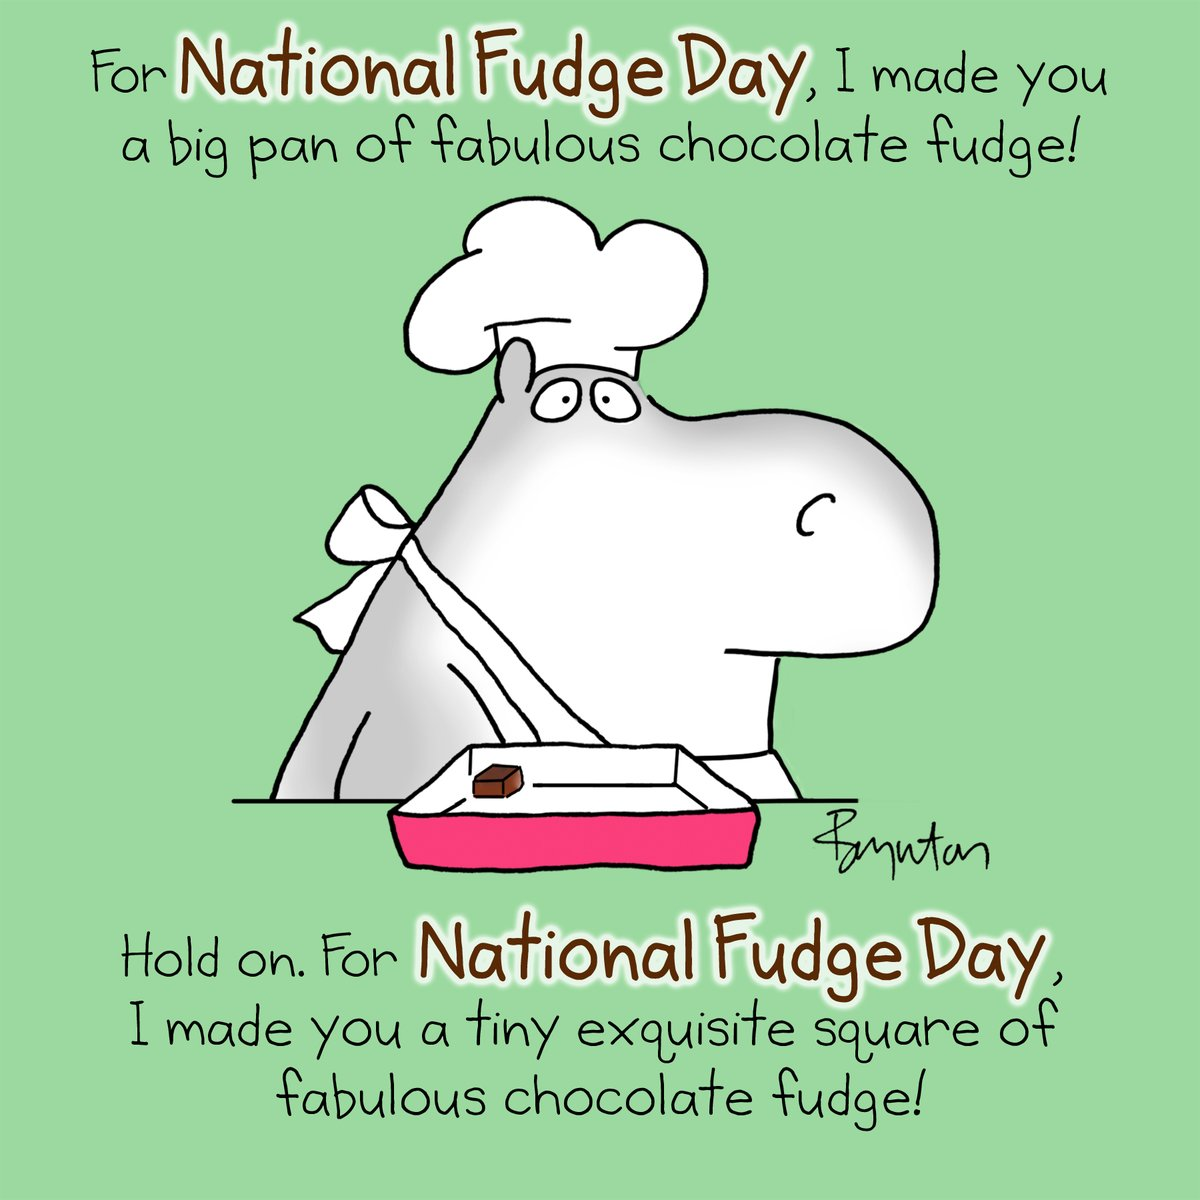 You're welcome! #NationalFudgeDay